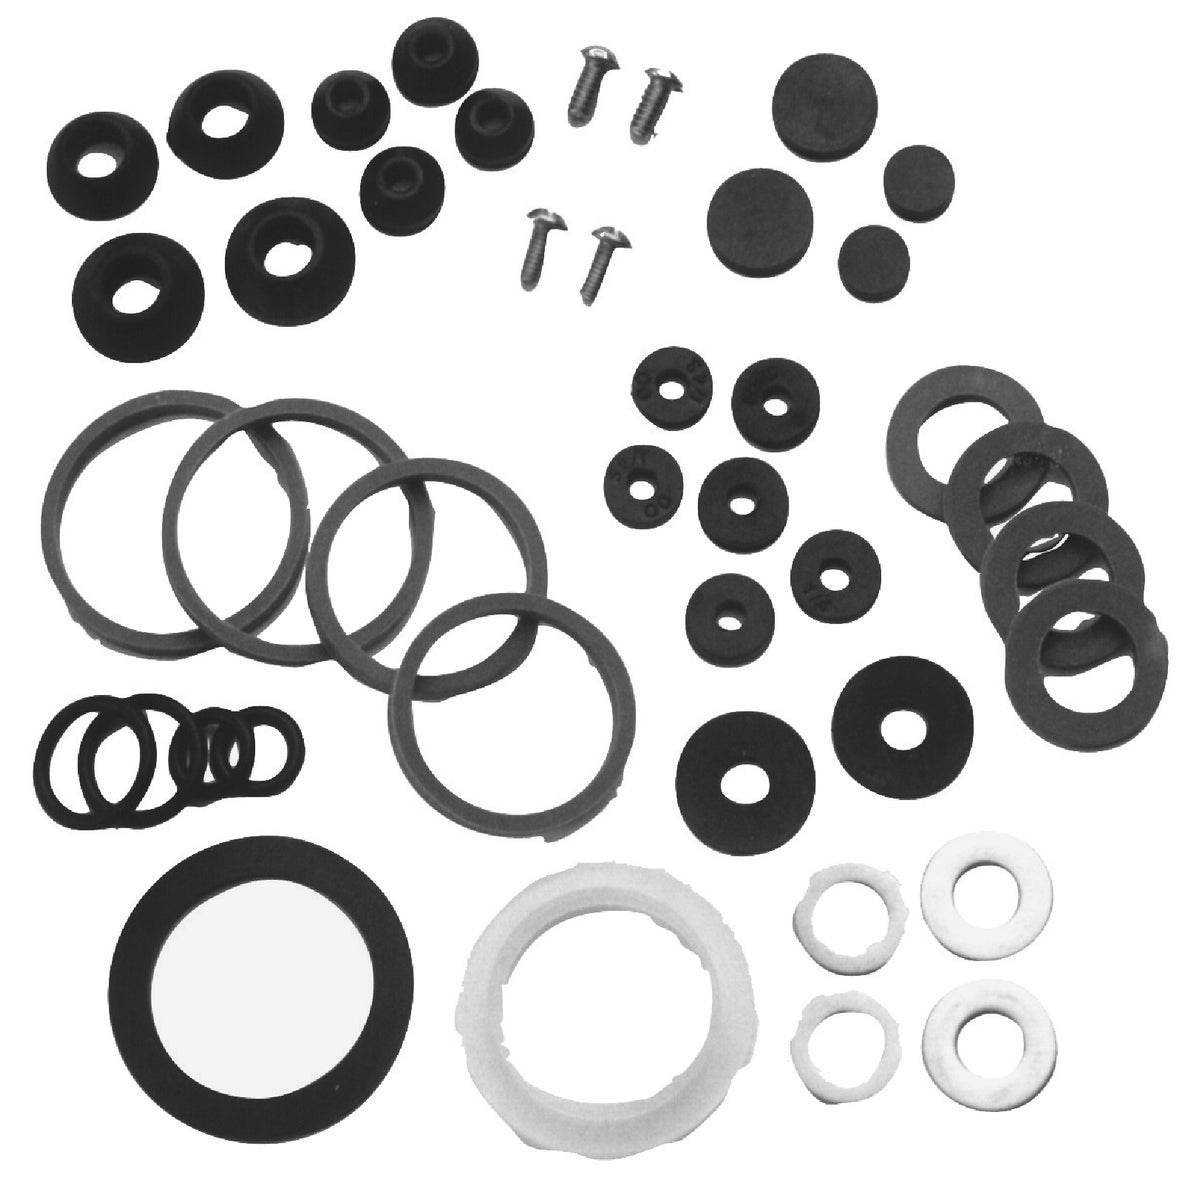 HOME WASHERS ASSORTMENT - 80817 by Danco Perfect Match